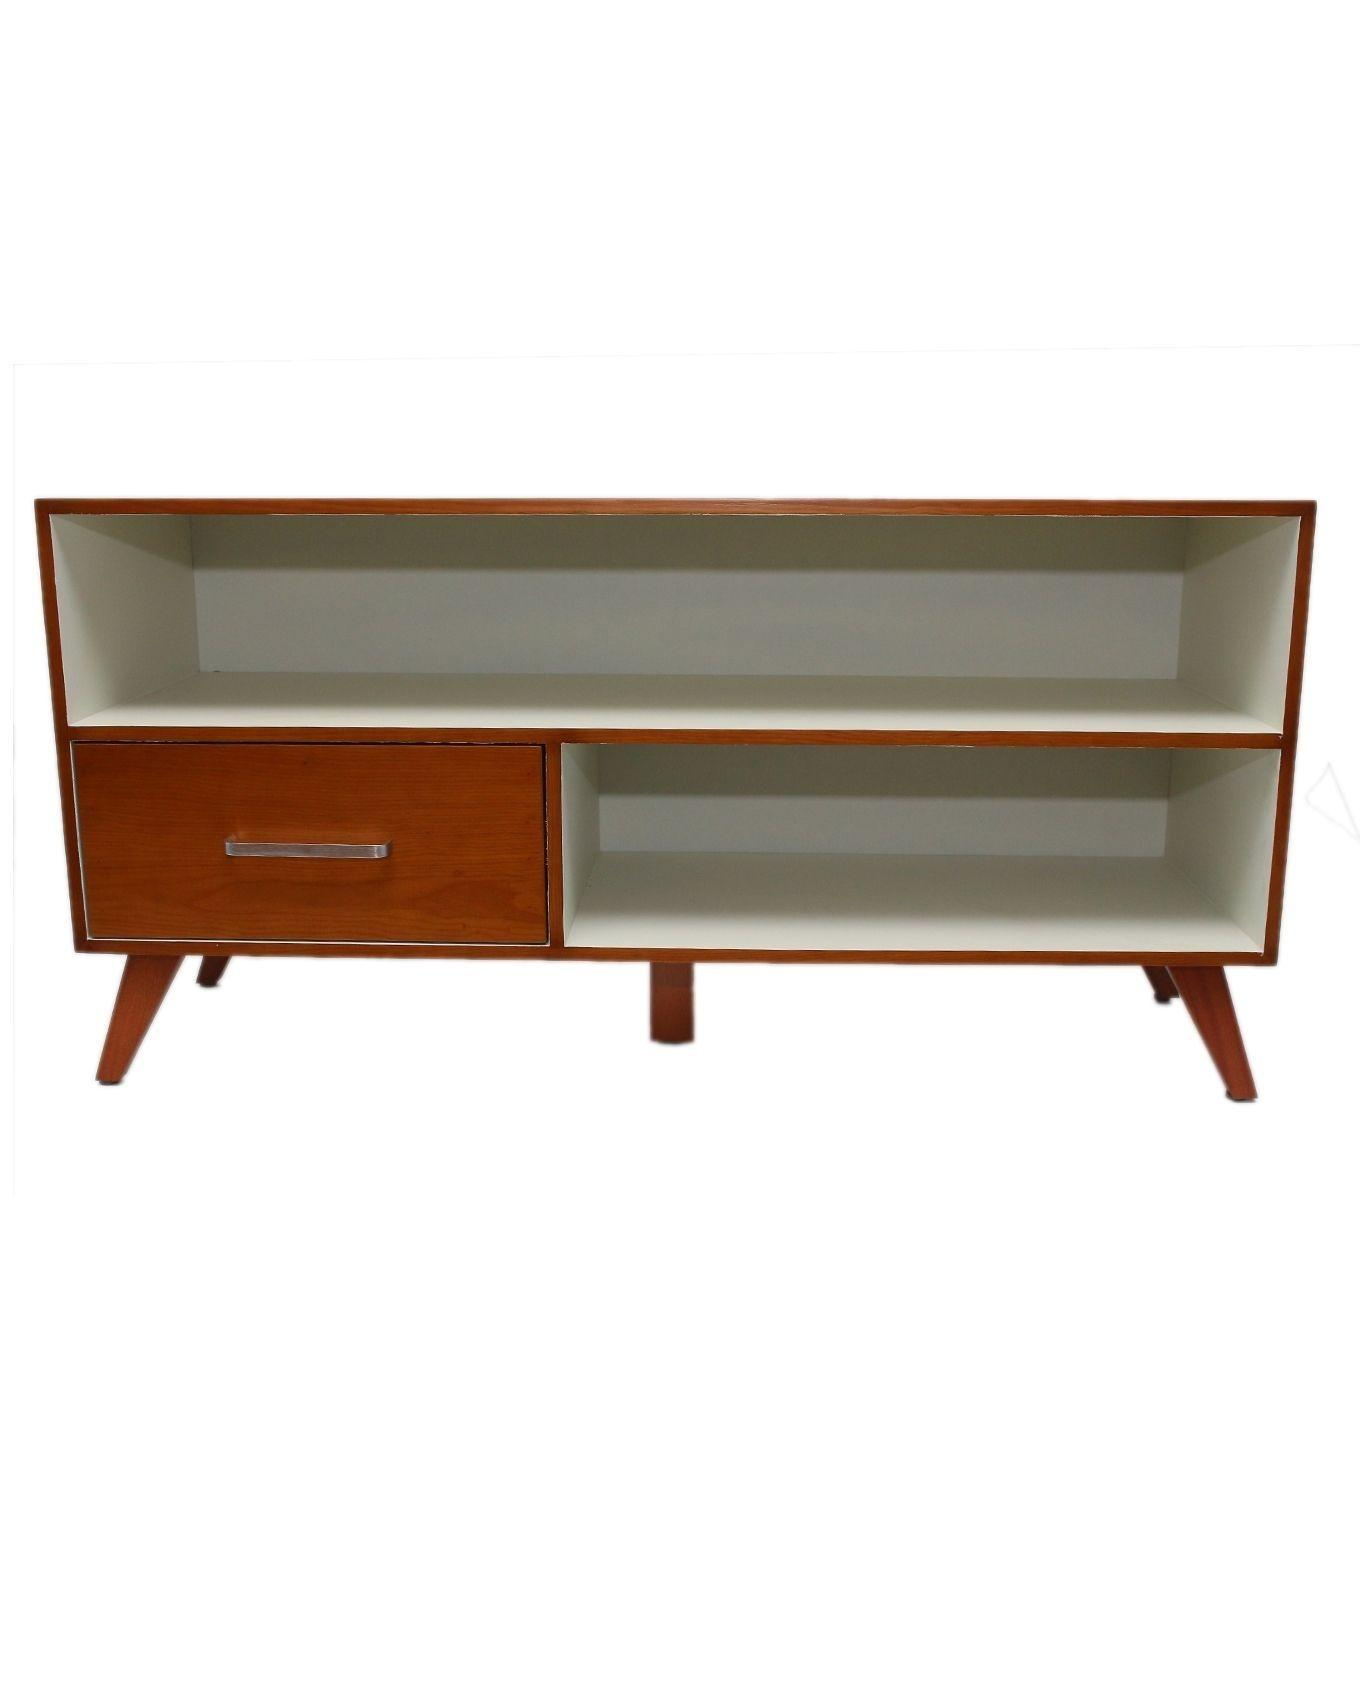 Buy WS™ Bookcases & Shelving at Best Prices Online in Sri